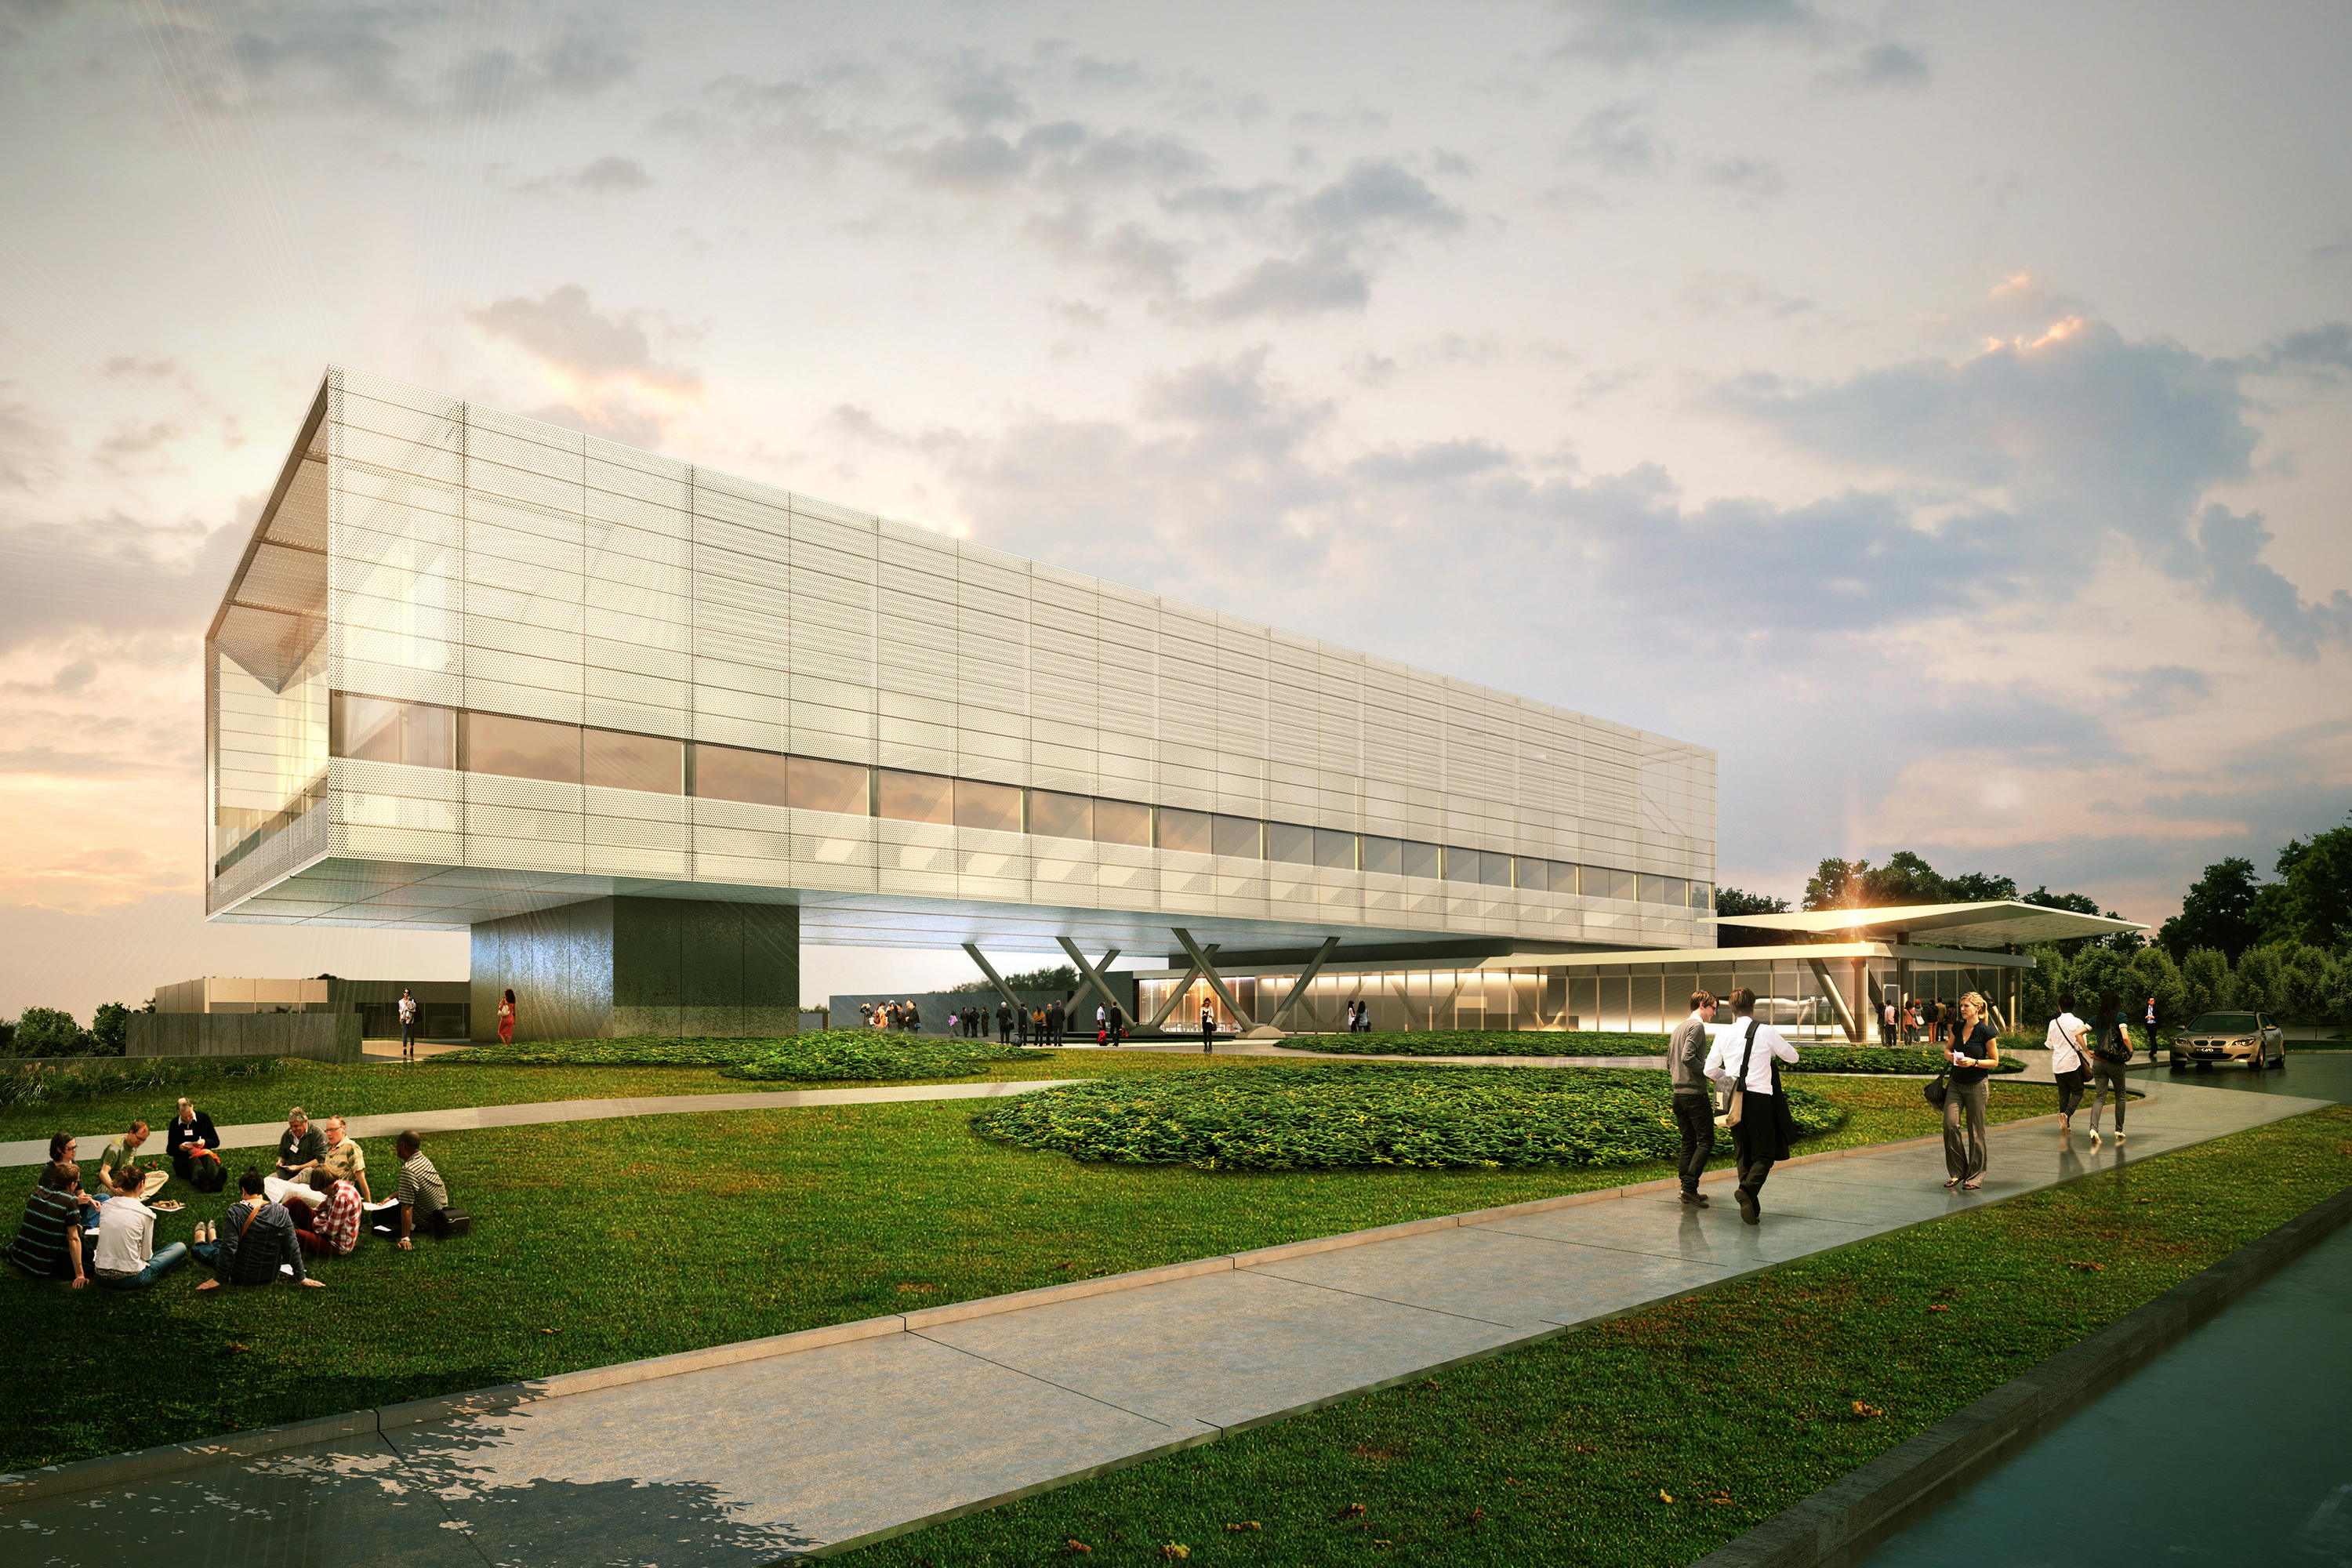 An artist's rendering of the future Innovation Partnership Building to be located at the UConn Technology Park. (Image courtesy of Skidmore, Owings & Merrill)